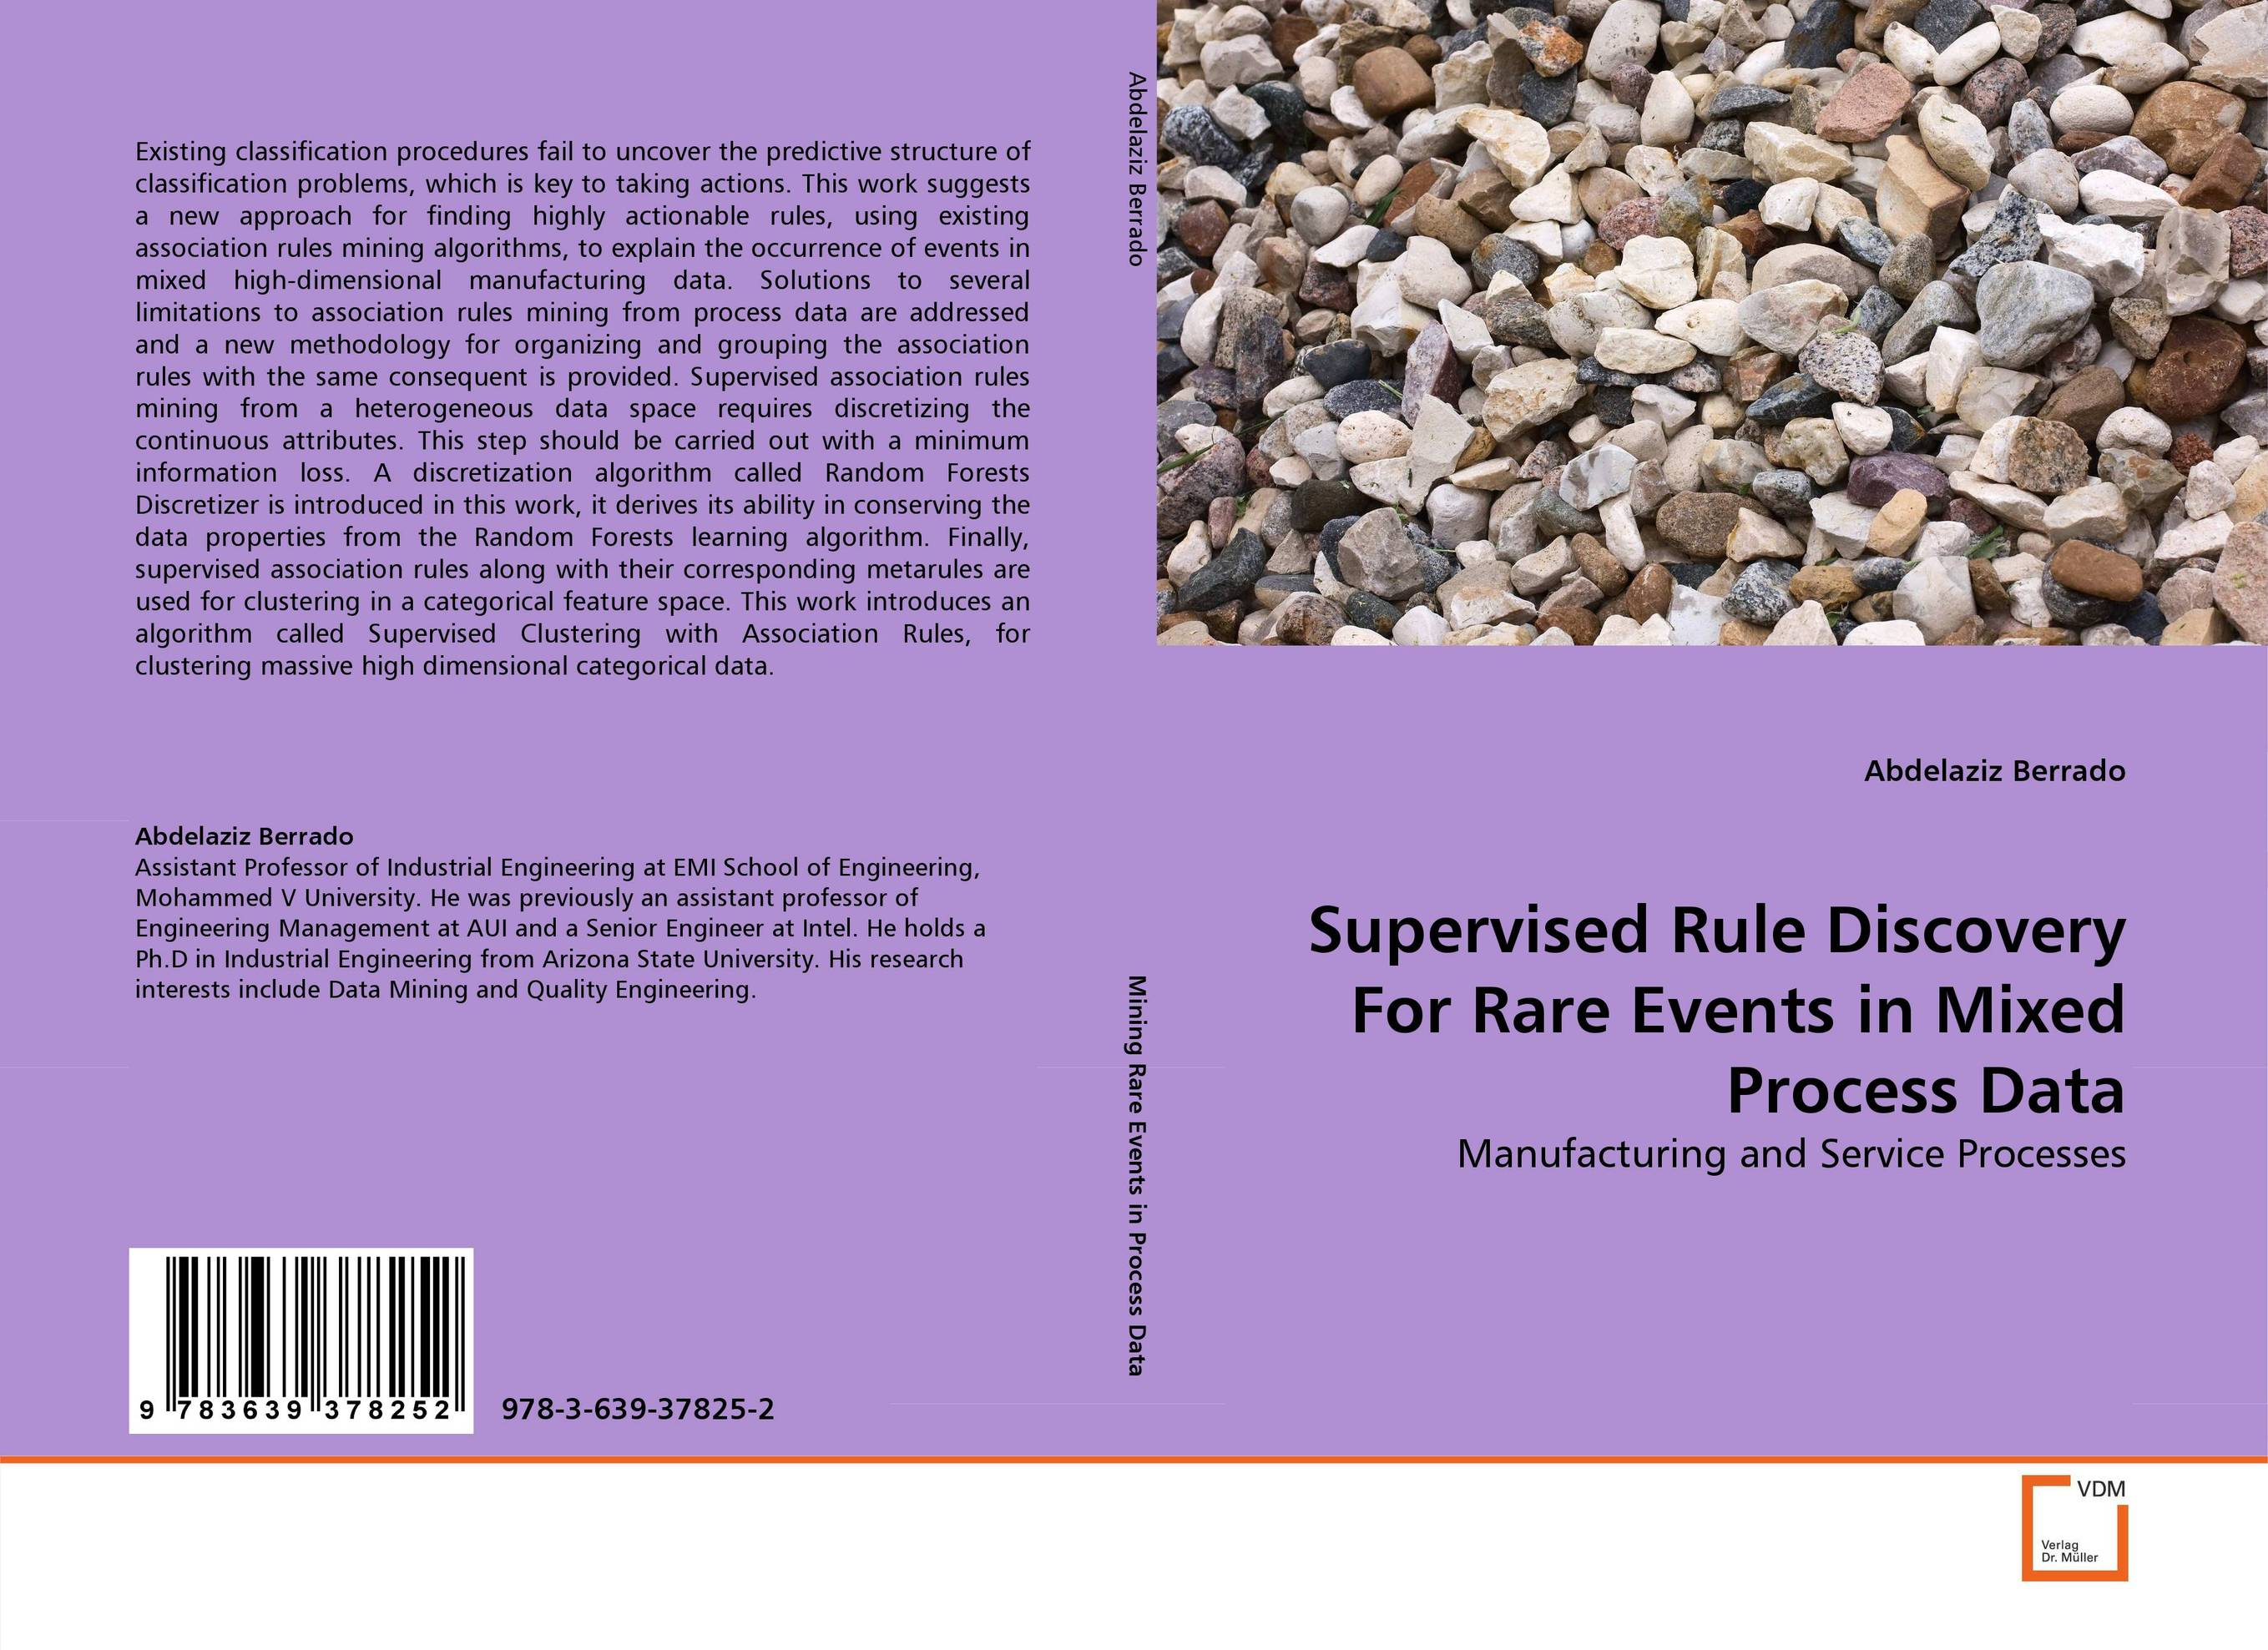 Supervised Rule Discovery For Rare Events in Mixed Process Data rules for a proper governess